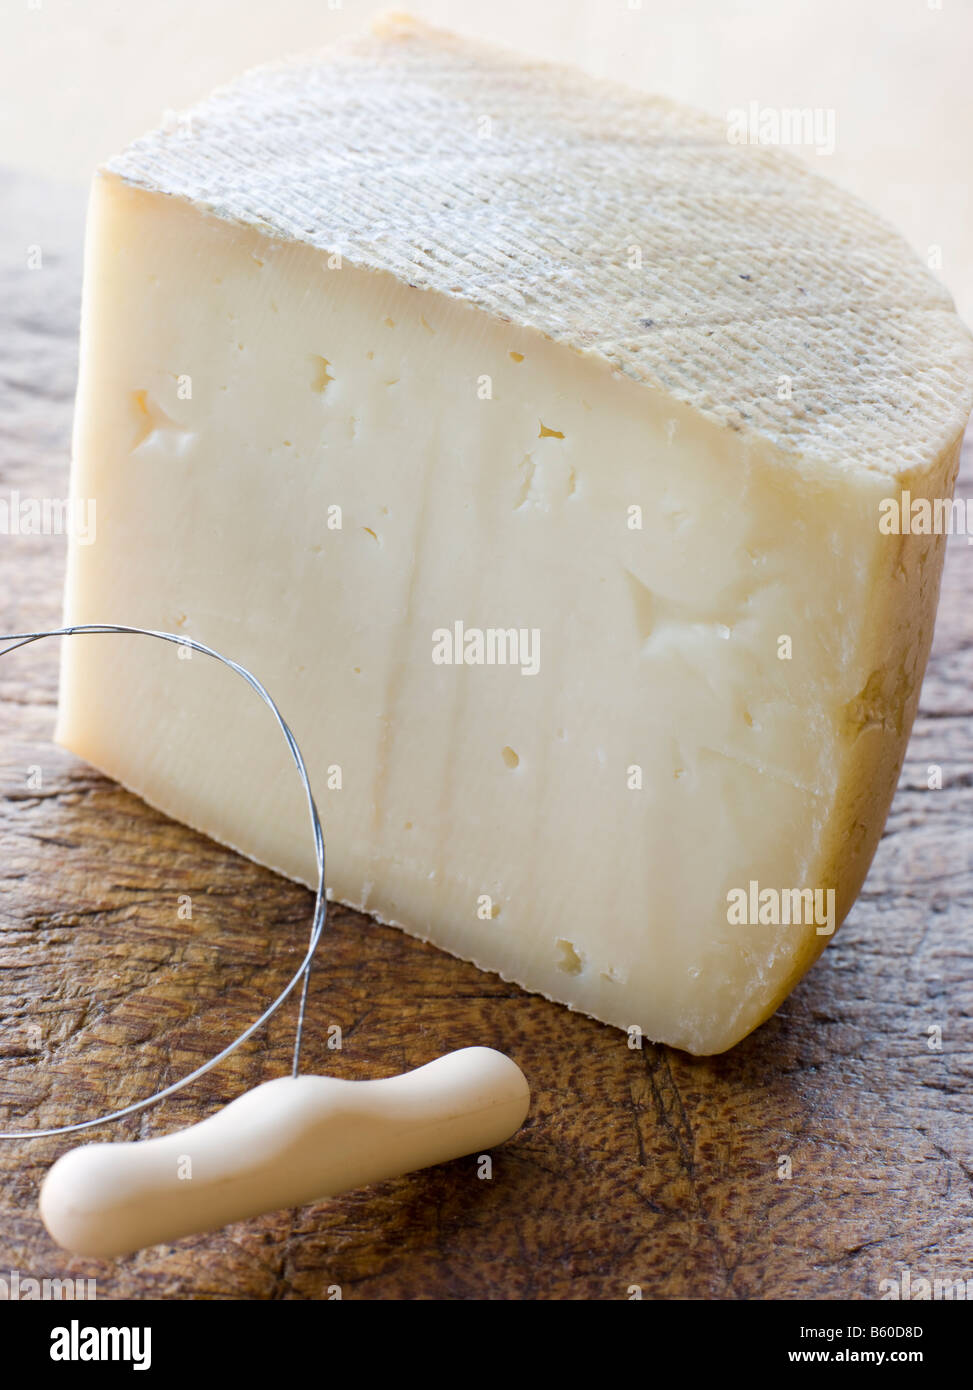 Cheese Wire Stock Photos & Cheese Wire Stock Images - Alamy